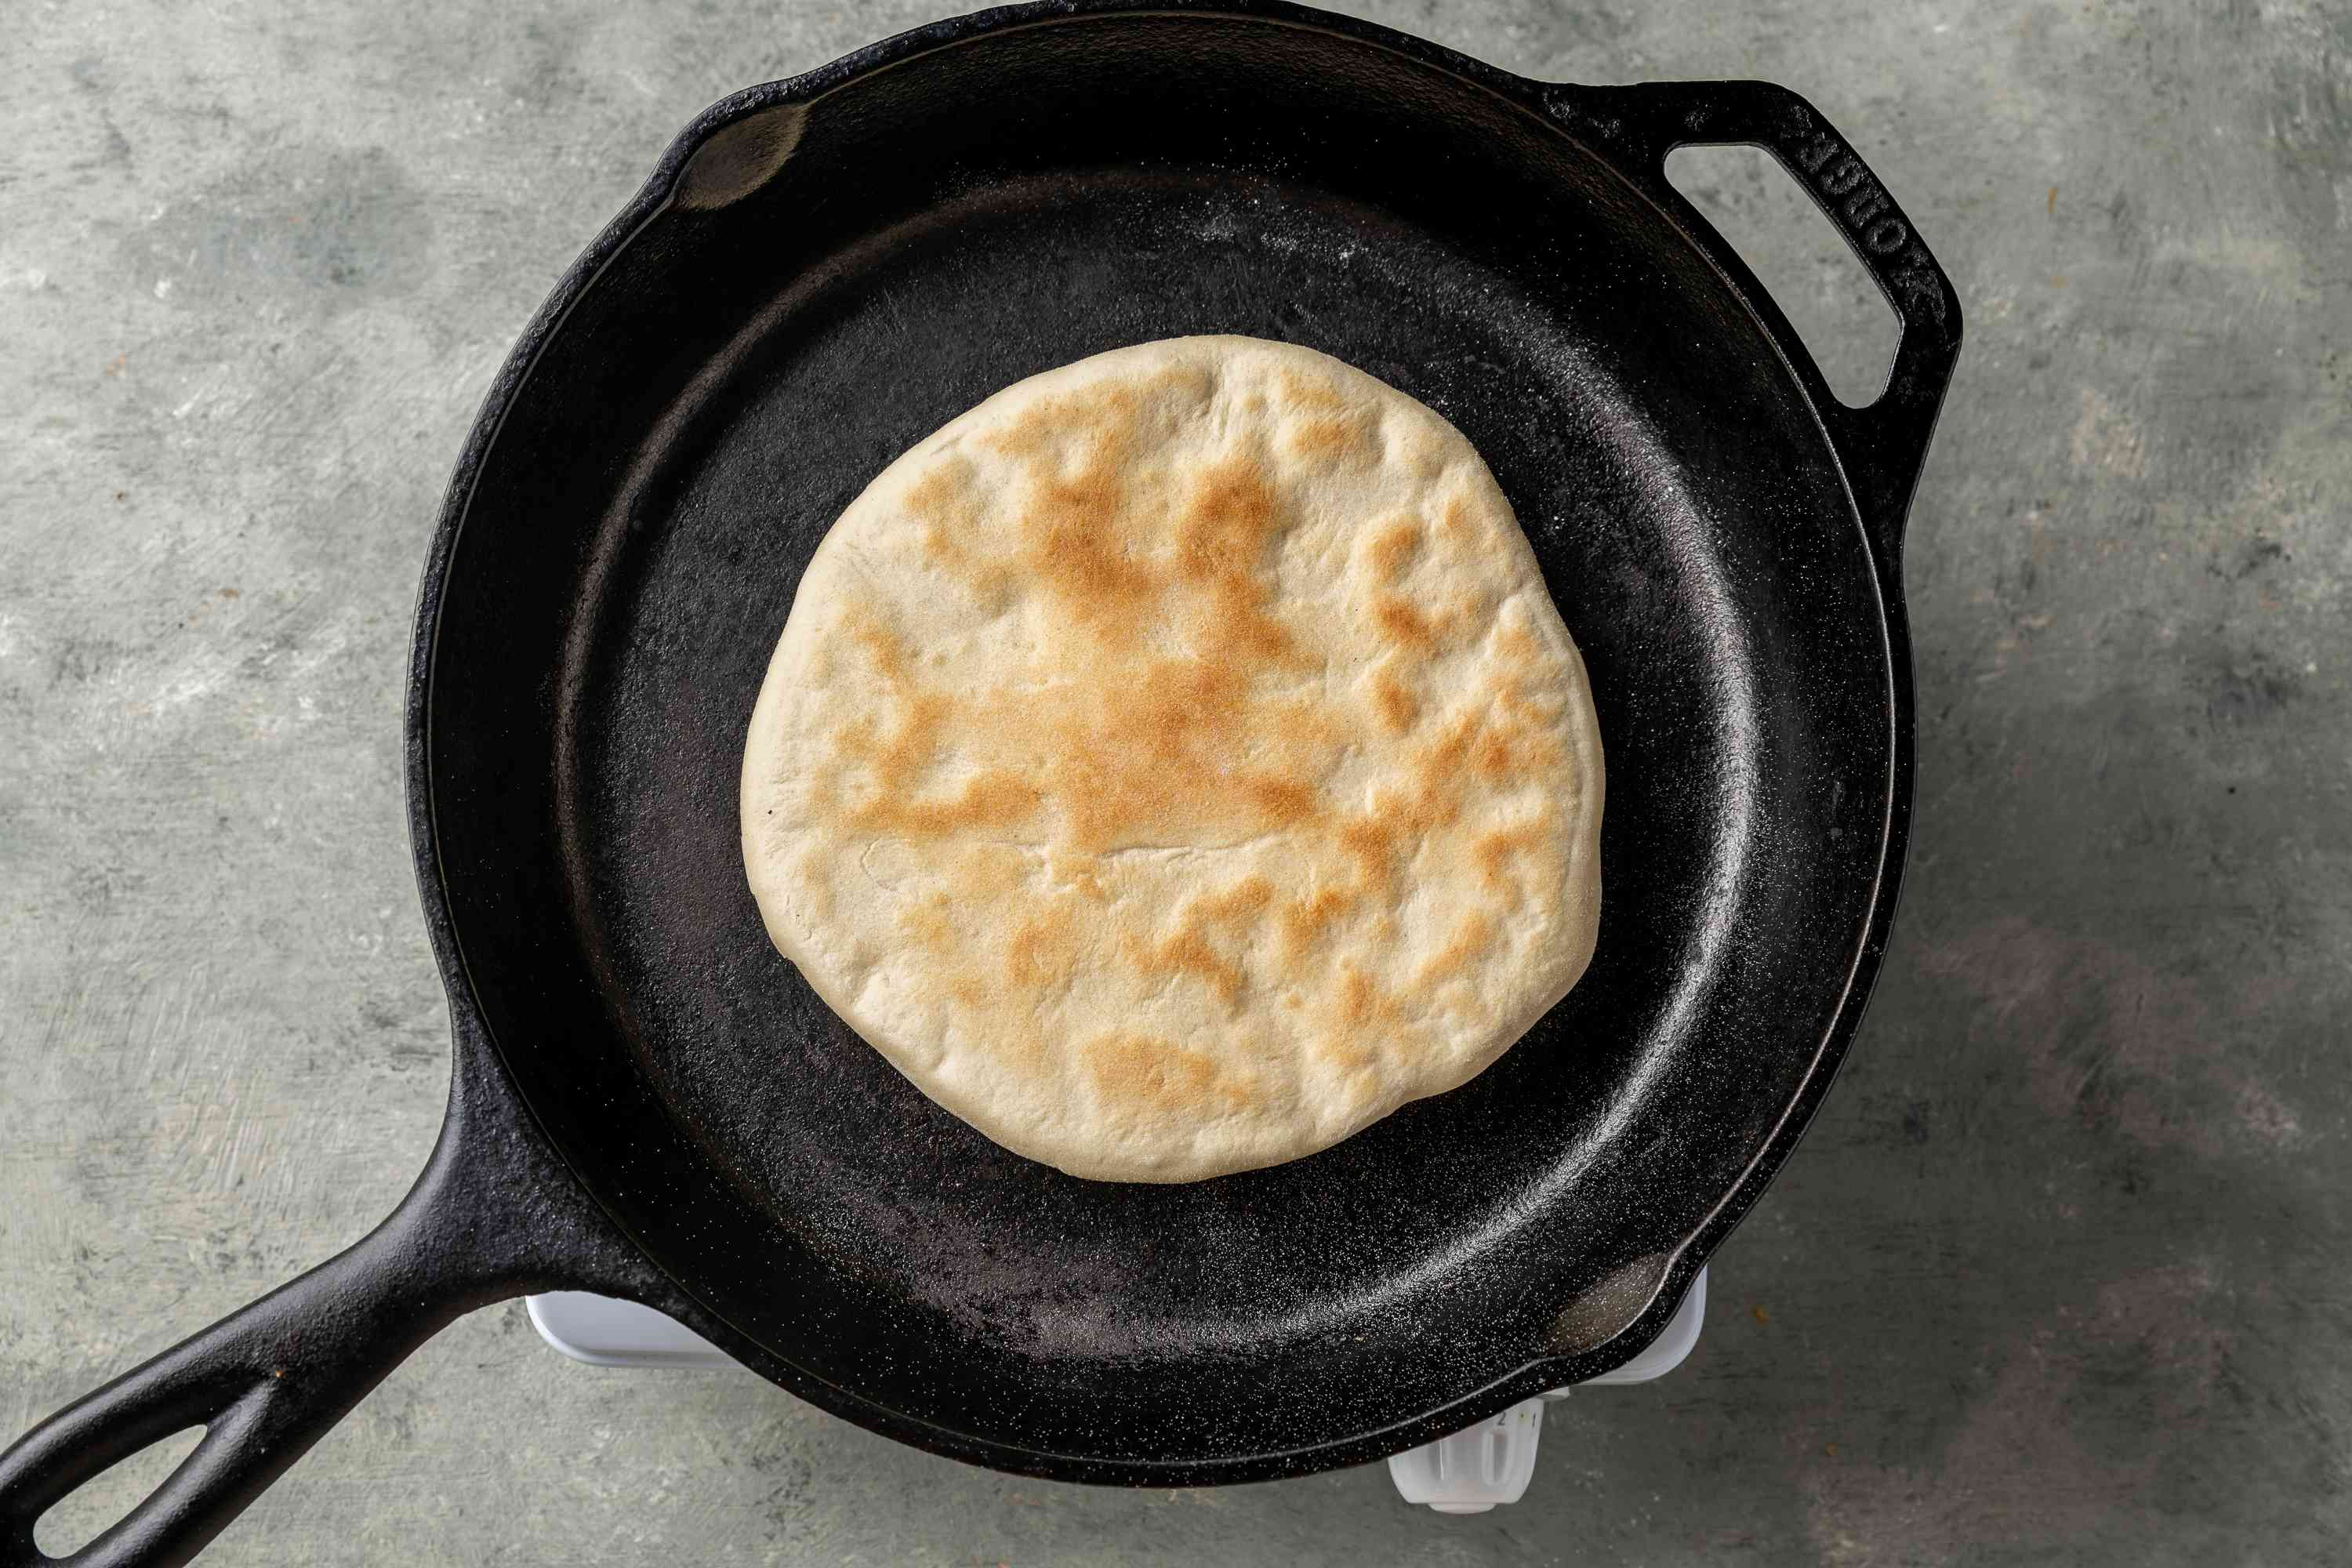 roti cooking in a cast iron skillet